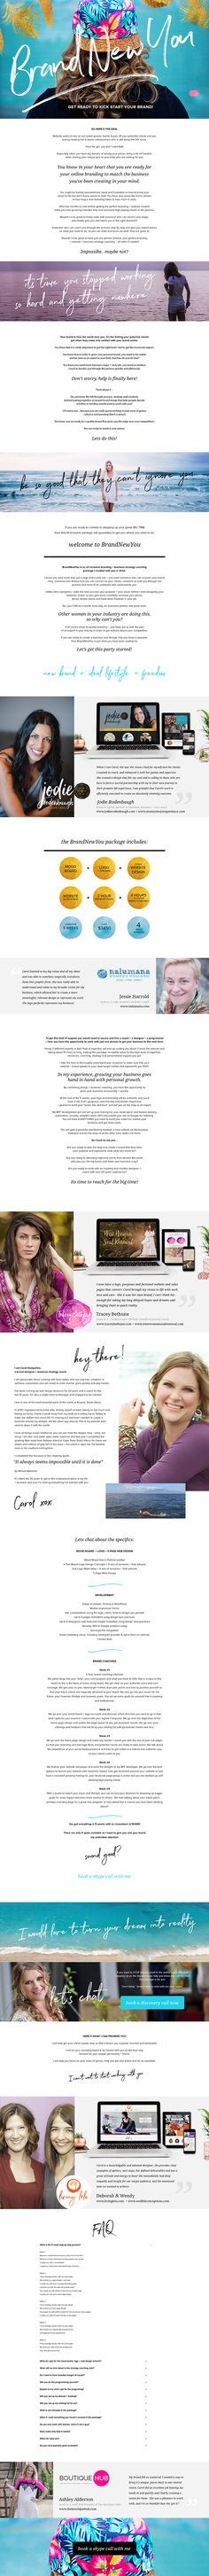 Kickstart your business through expert logo design + web site design + programming + 6 hours of brand strategy - all in 5 weeks?  I am Carol and I am so excited to share with you my all inclusive package that will turn your business around in record time. Get your business noticed and your dream clients NOW - click on the link below and lets make it happen!  http://brandnewyou2017.com/